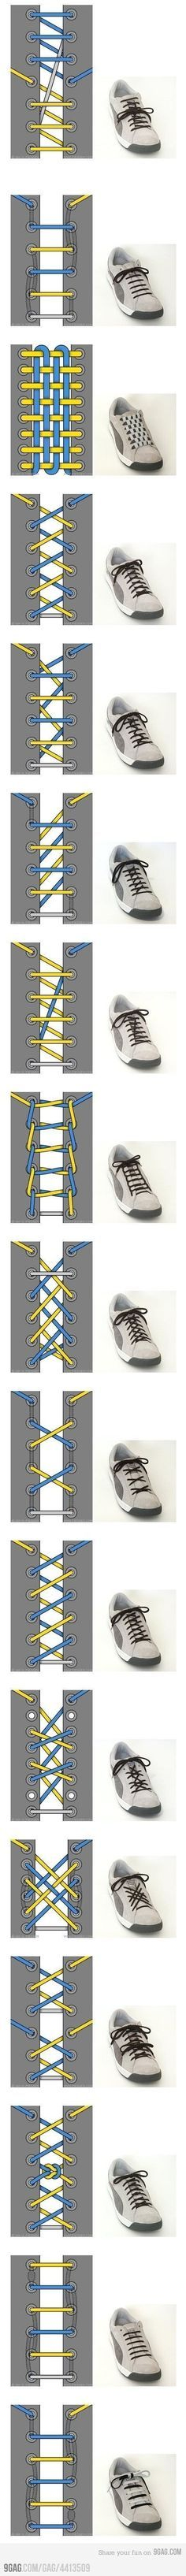 17 Ways To Tie Your Shoelace @adam rogers perhaps shoelaces are underrated bc you're not doing this!!